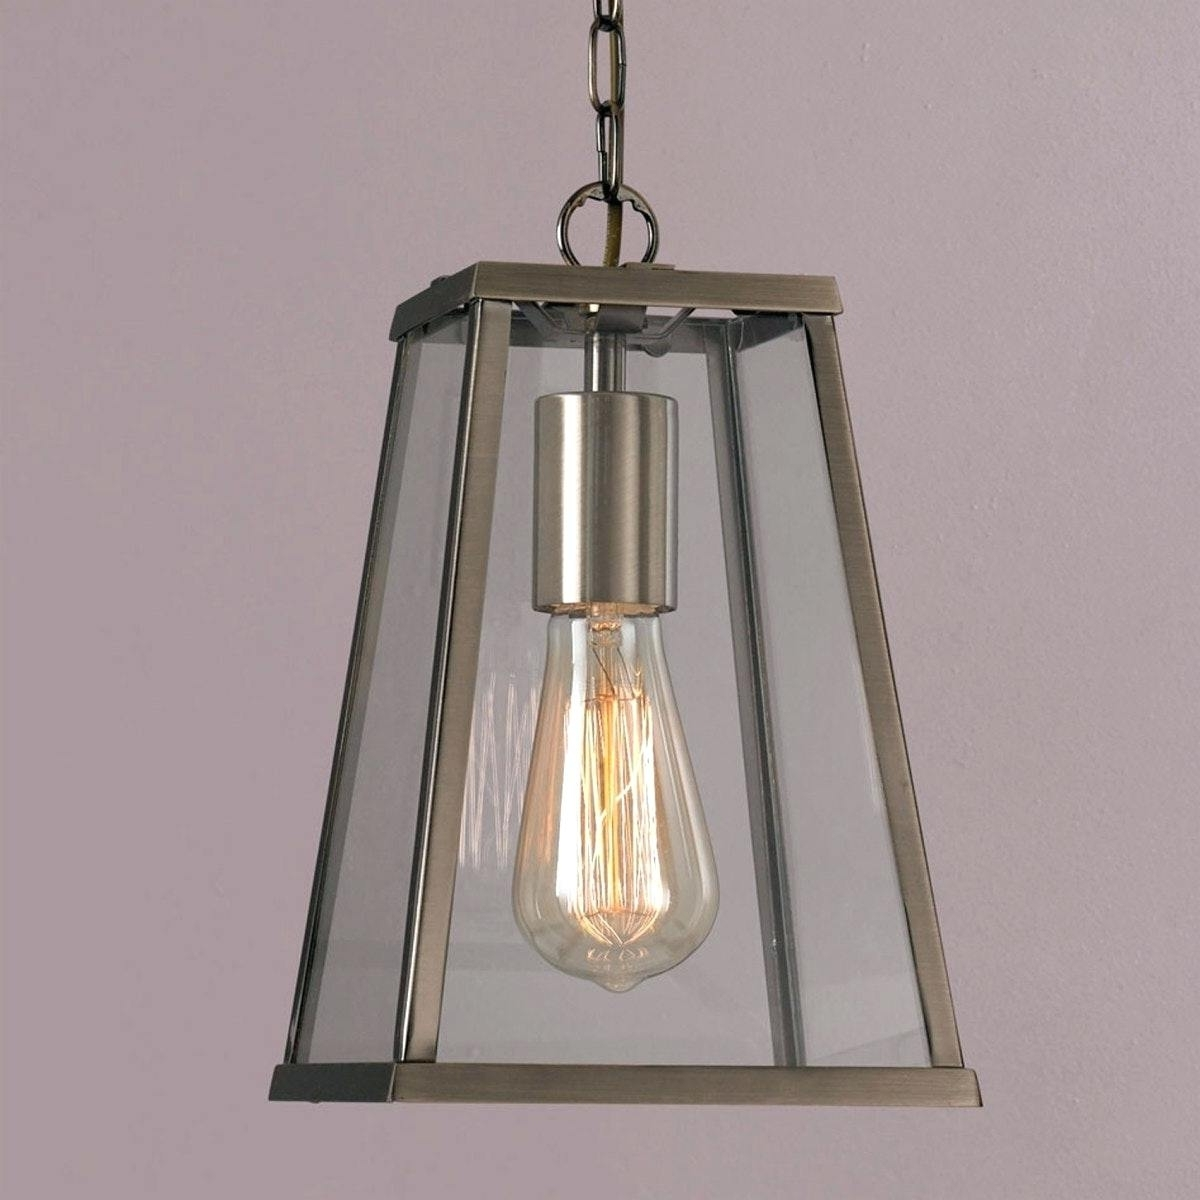 Lantern Ceiling Lights Hangg Hanging Indoor Pendant Light Uk Outdoor With Regard To Popular Outdoor Hanging Lights At Ebay (View 19 of 20)